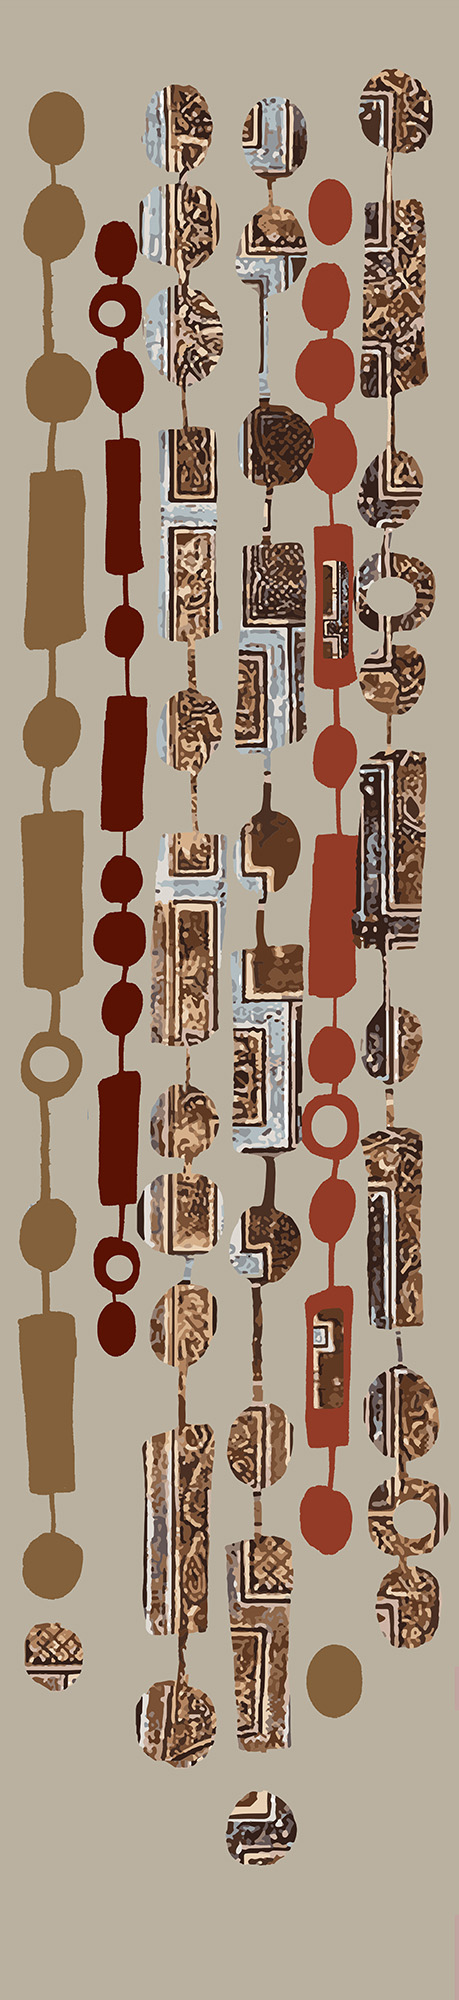 Digital print on Irish linen The Book of Kells is the inspiration for this piece. Ornate borders and Celtic patterns are abstracted to create this horizontal design. 205 cm X 46 cm